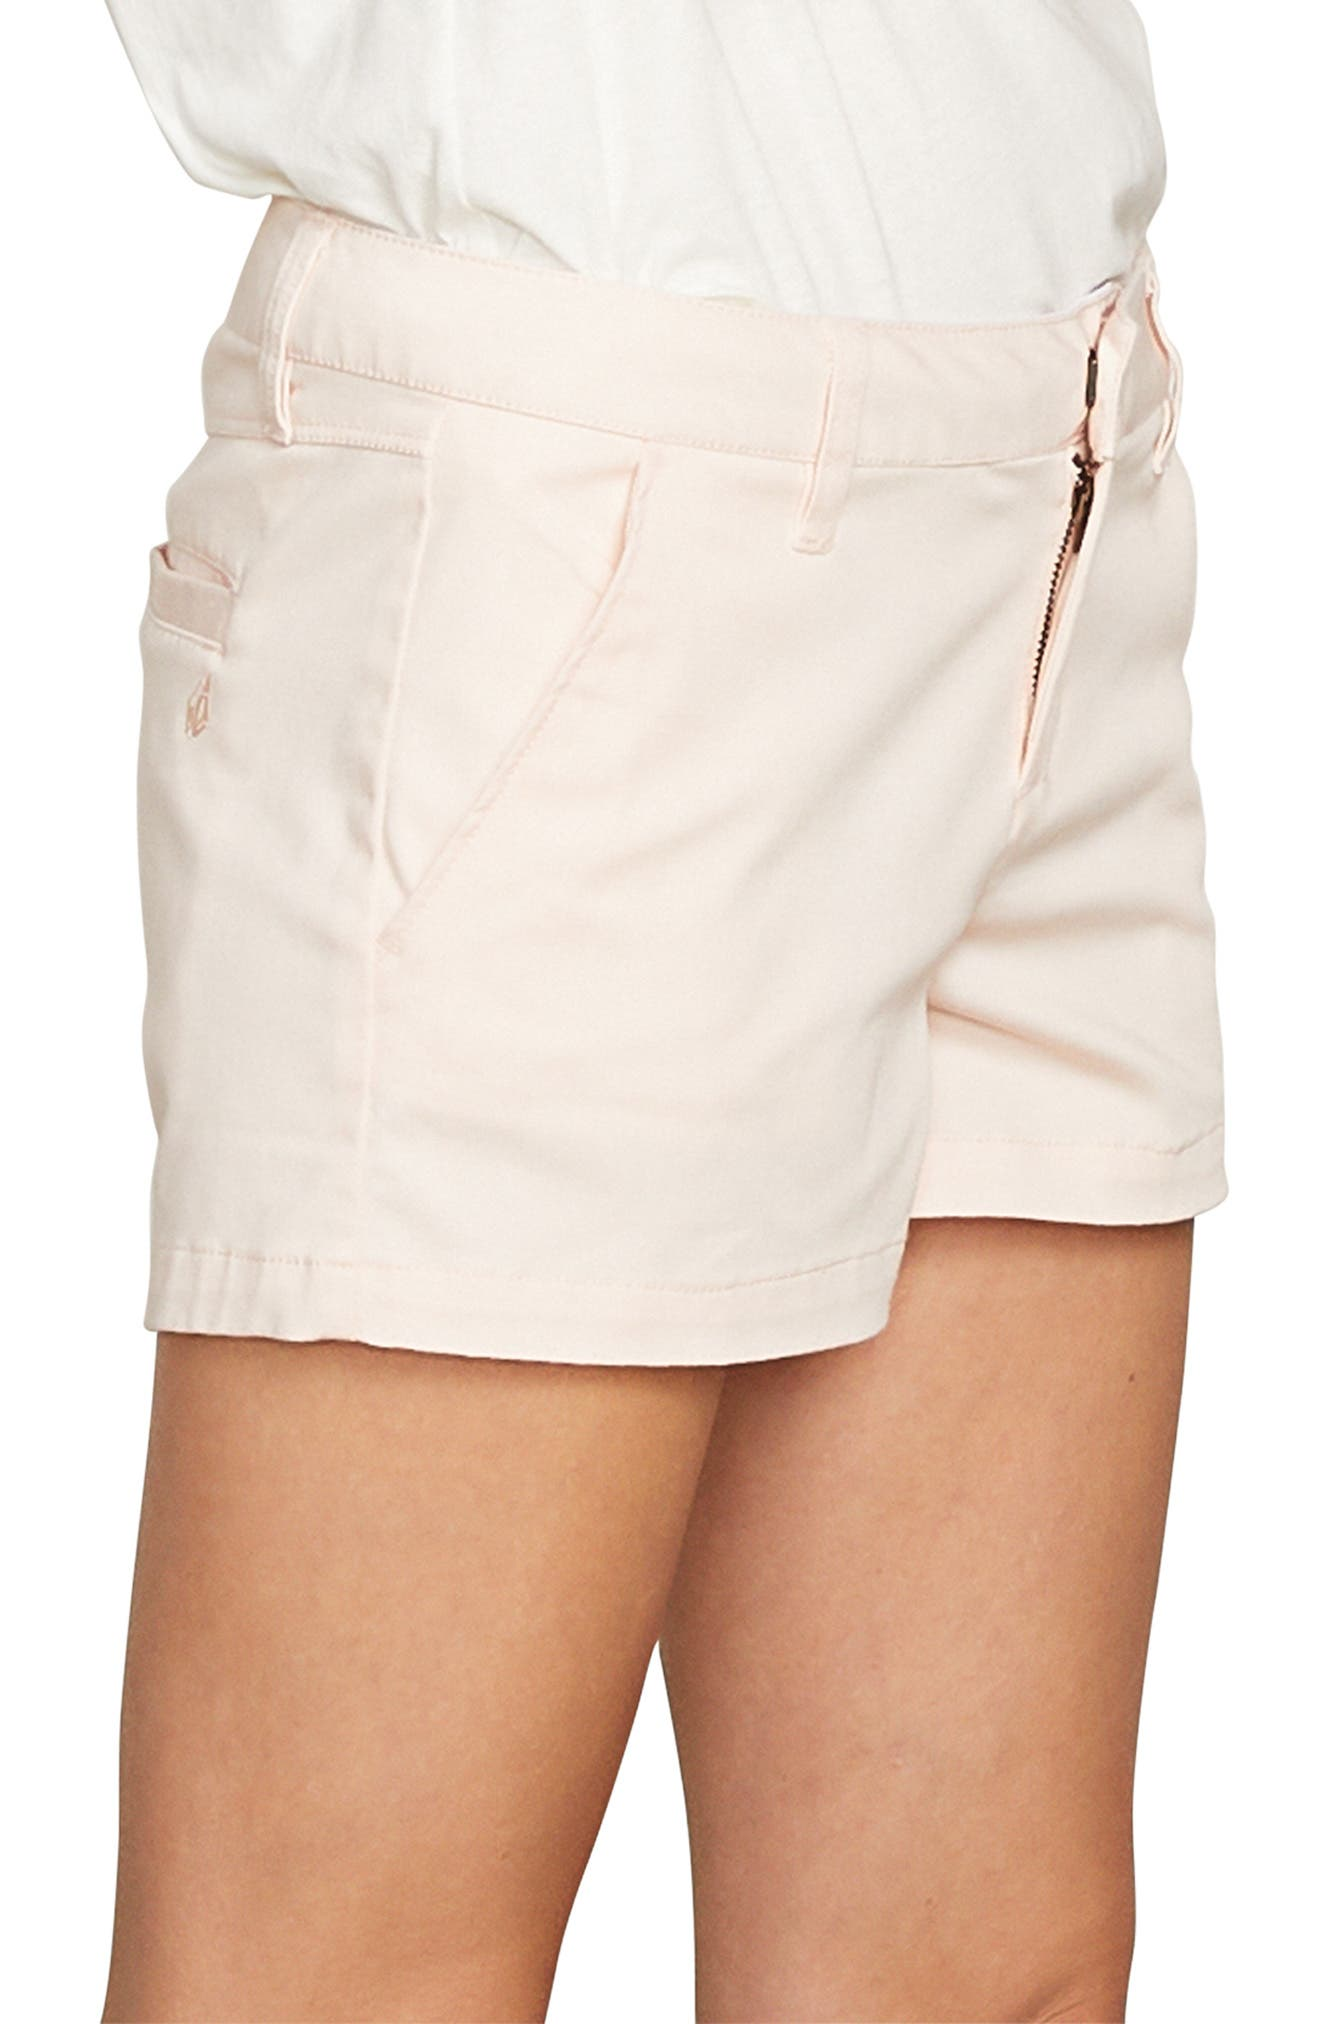 Frochickie Chino Shorts,                             Alternate thumbnail 3, color,                             CLOUD PINK